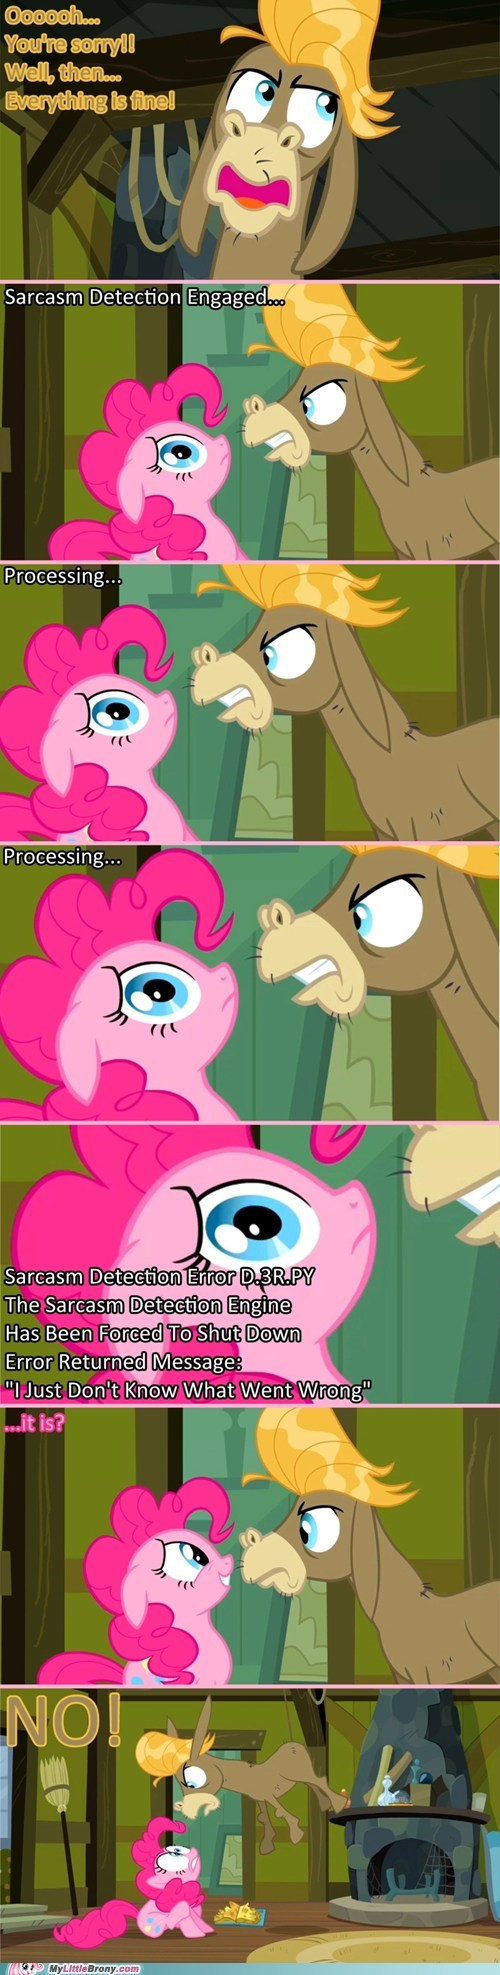 Pinkie doesn't seem to get turn of phrase or sarcasm